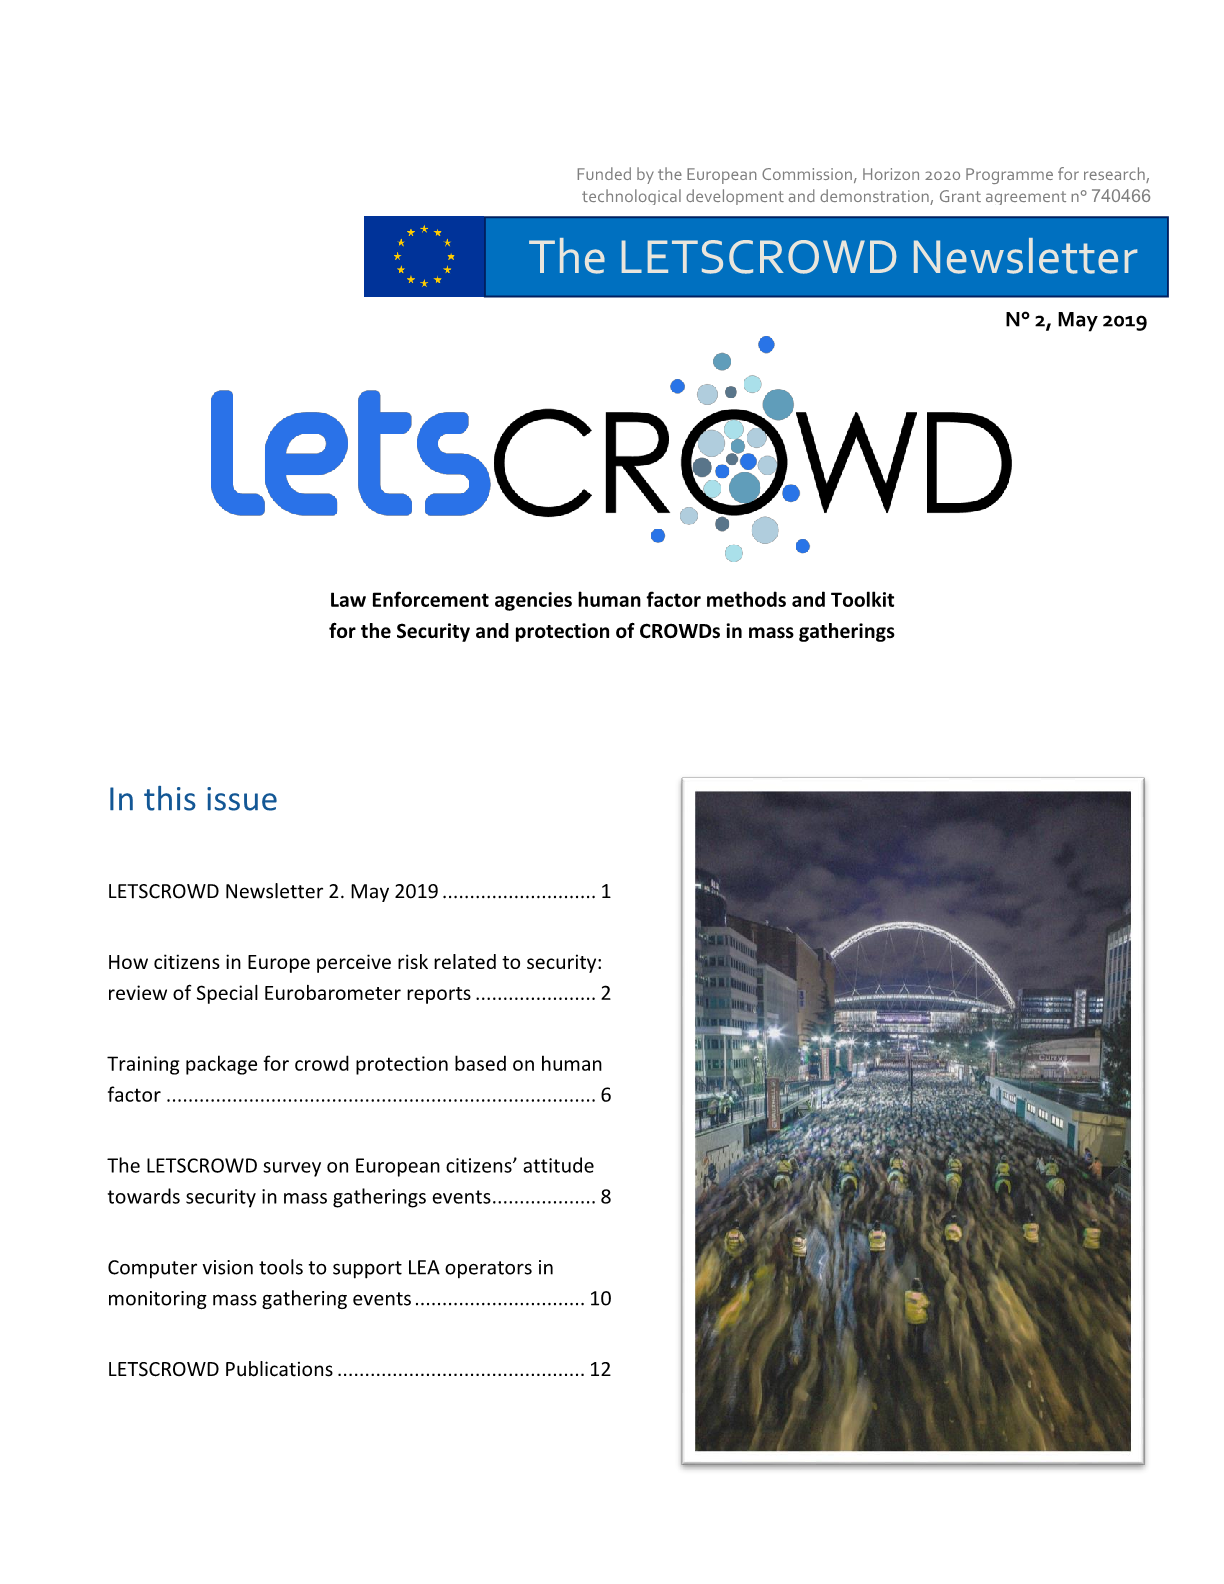 LETSCROWD Newsletter Issue 02, May 2019